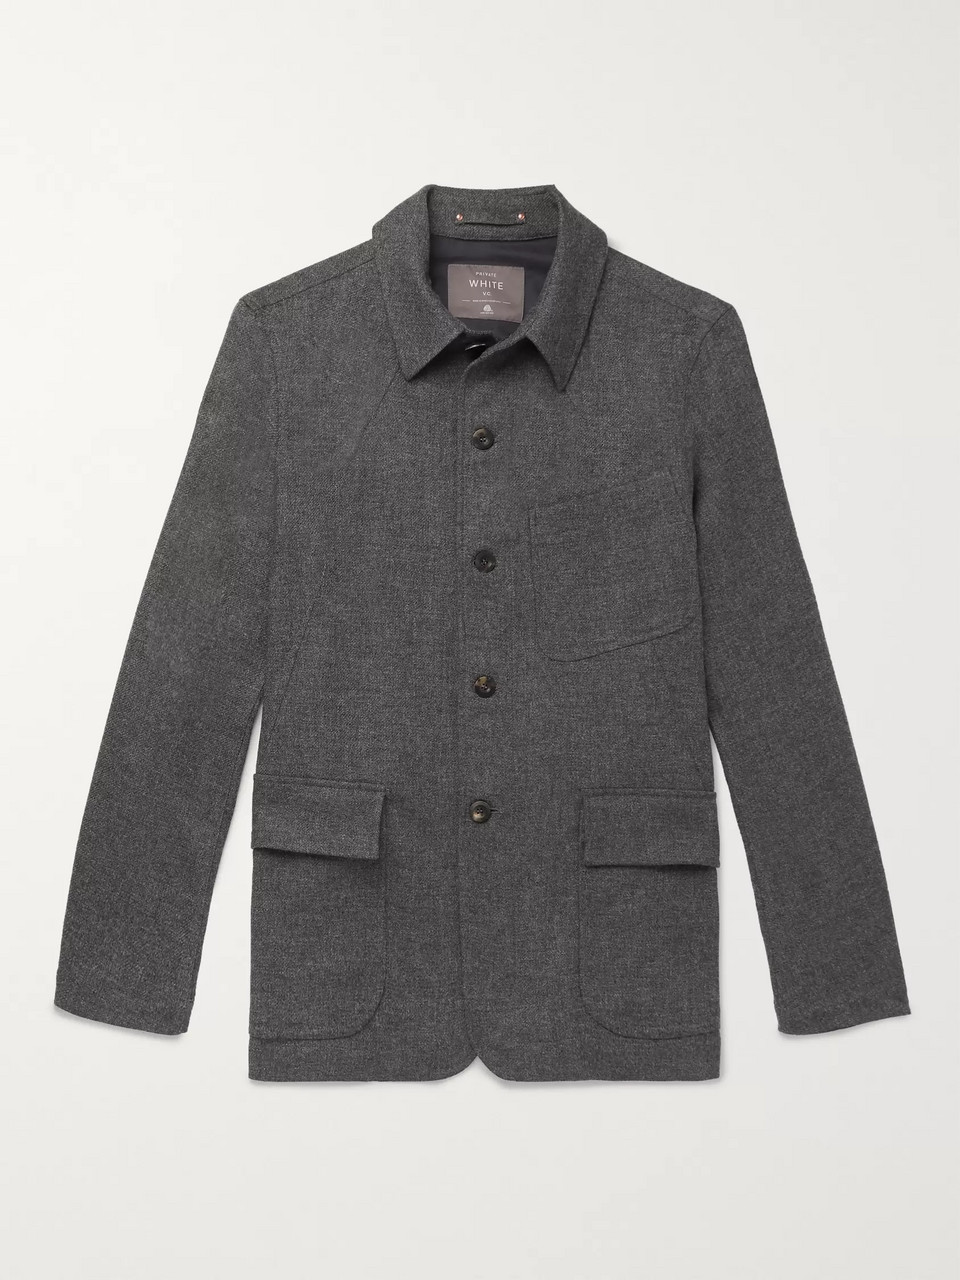 Private White V.C. Herringbone Wool Shirt Jacket